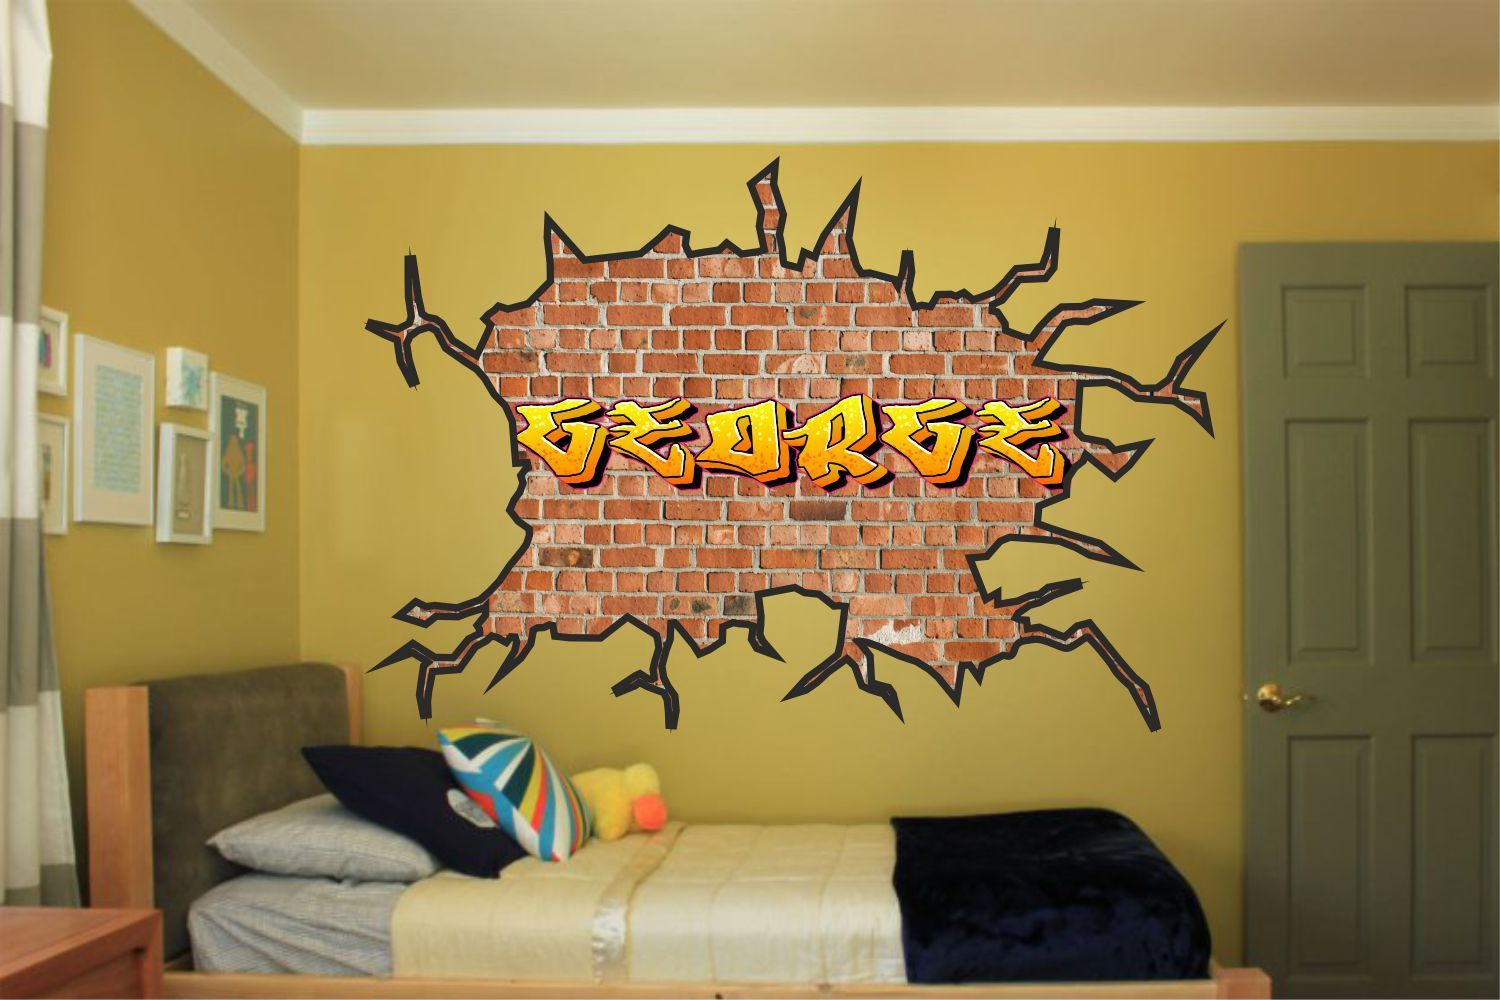 Large personalised name graffiti wall art sticker boys girls kids